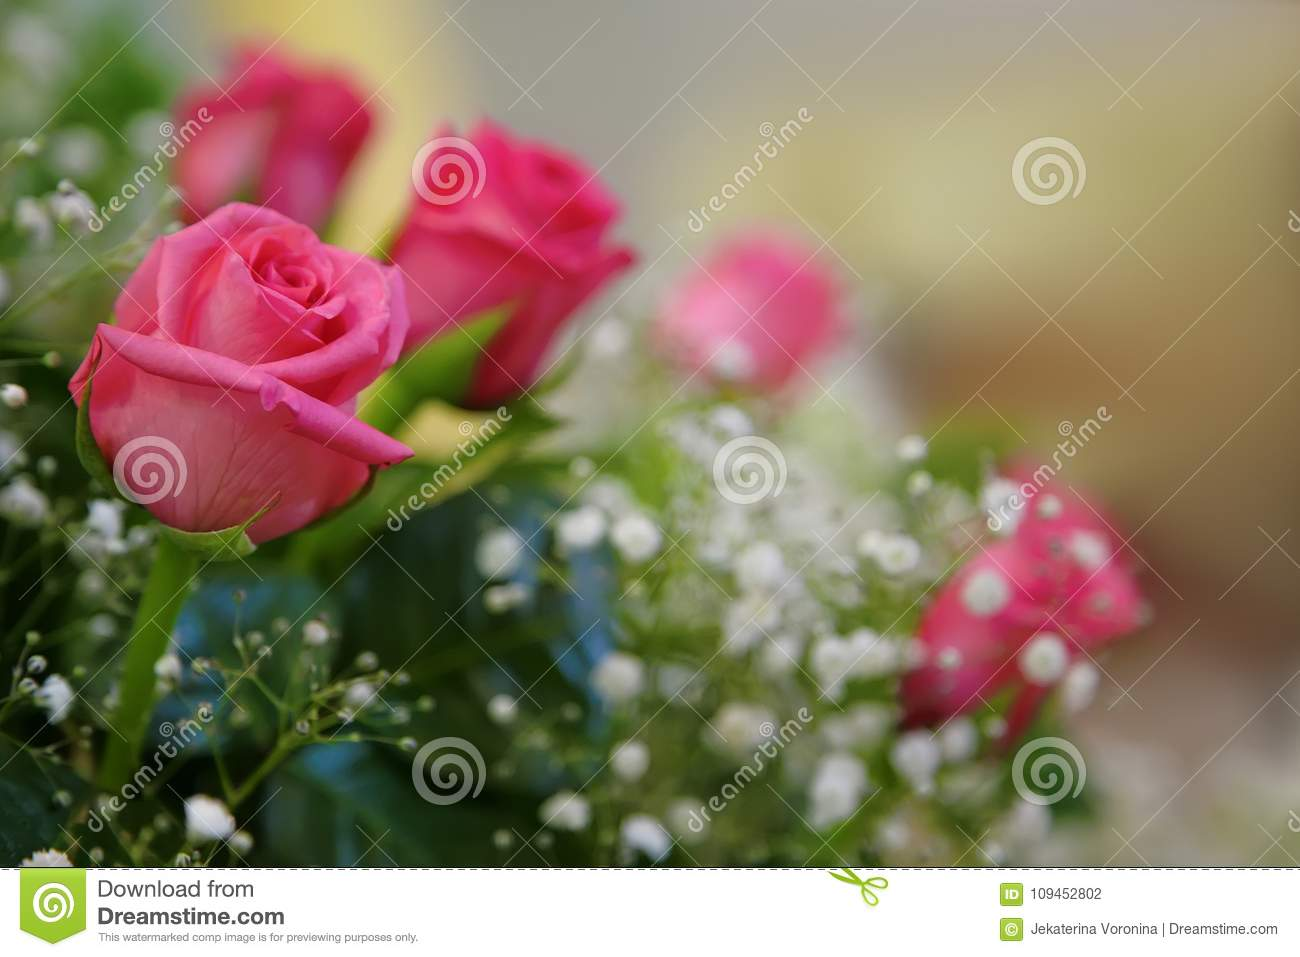 A Bouquet Of Roses With Small White Flowers Stock Photo Image Of